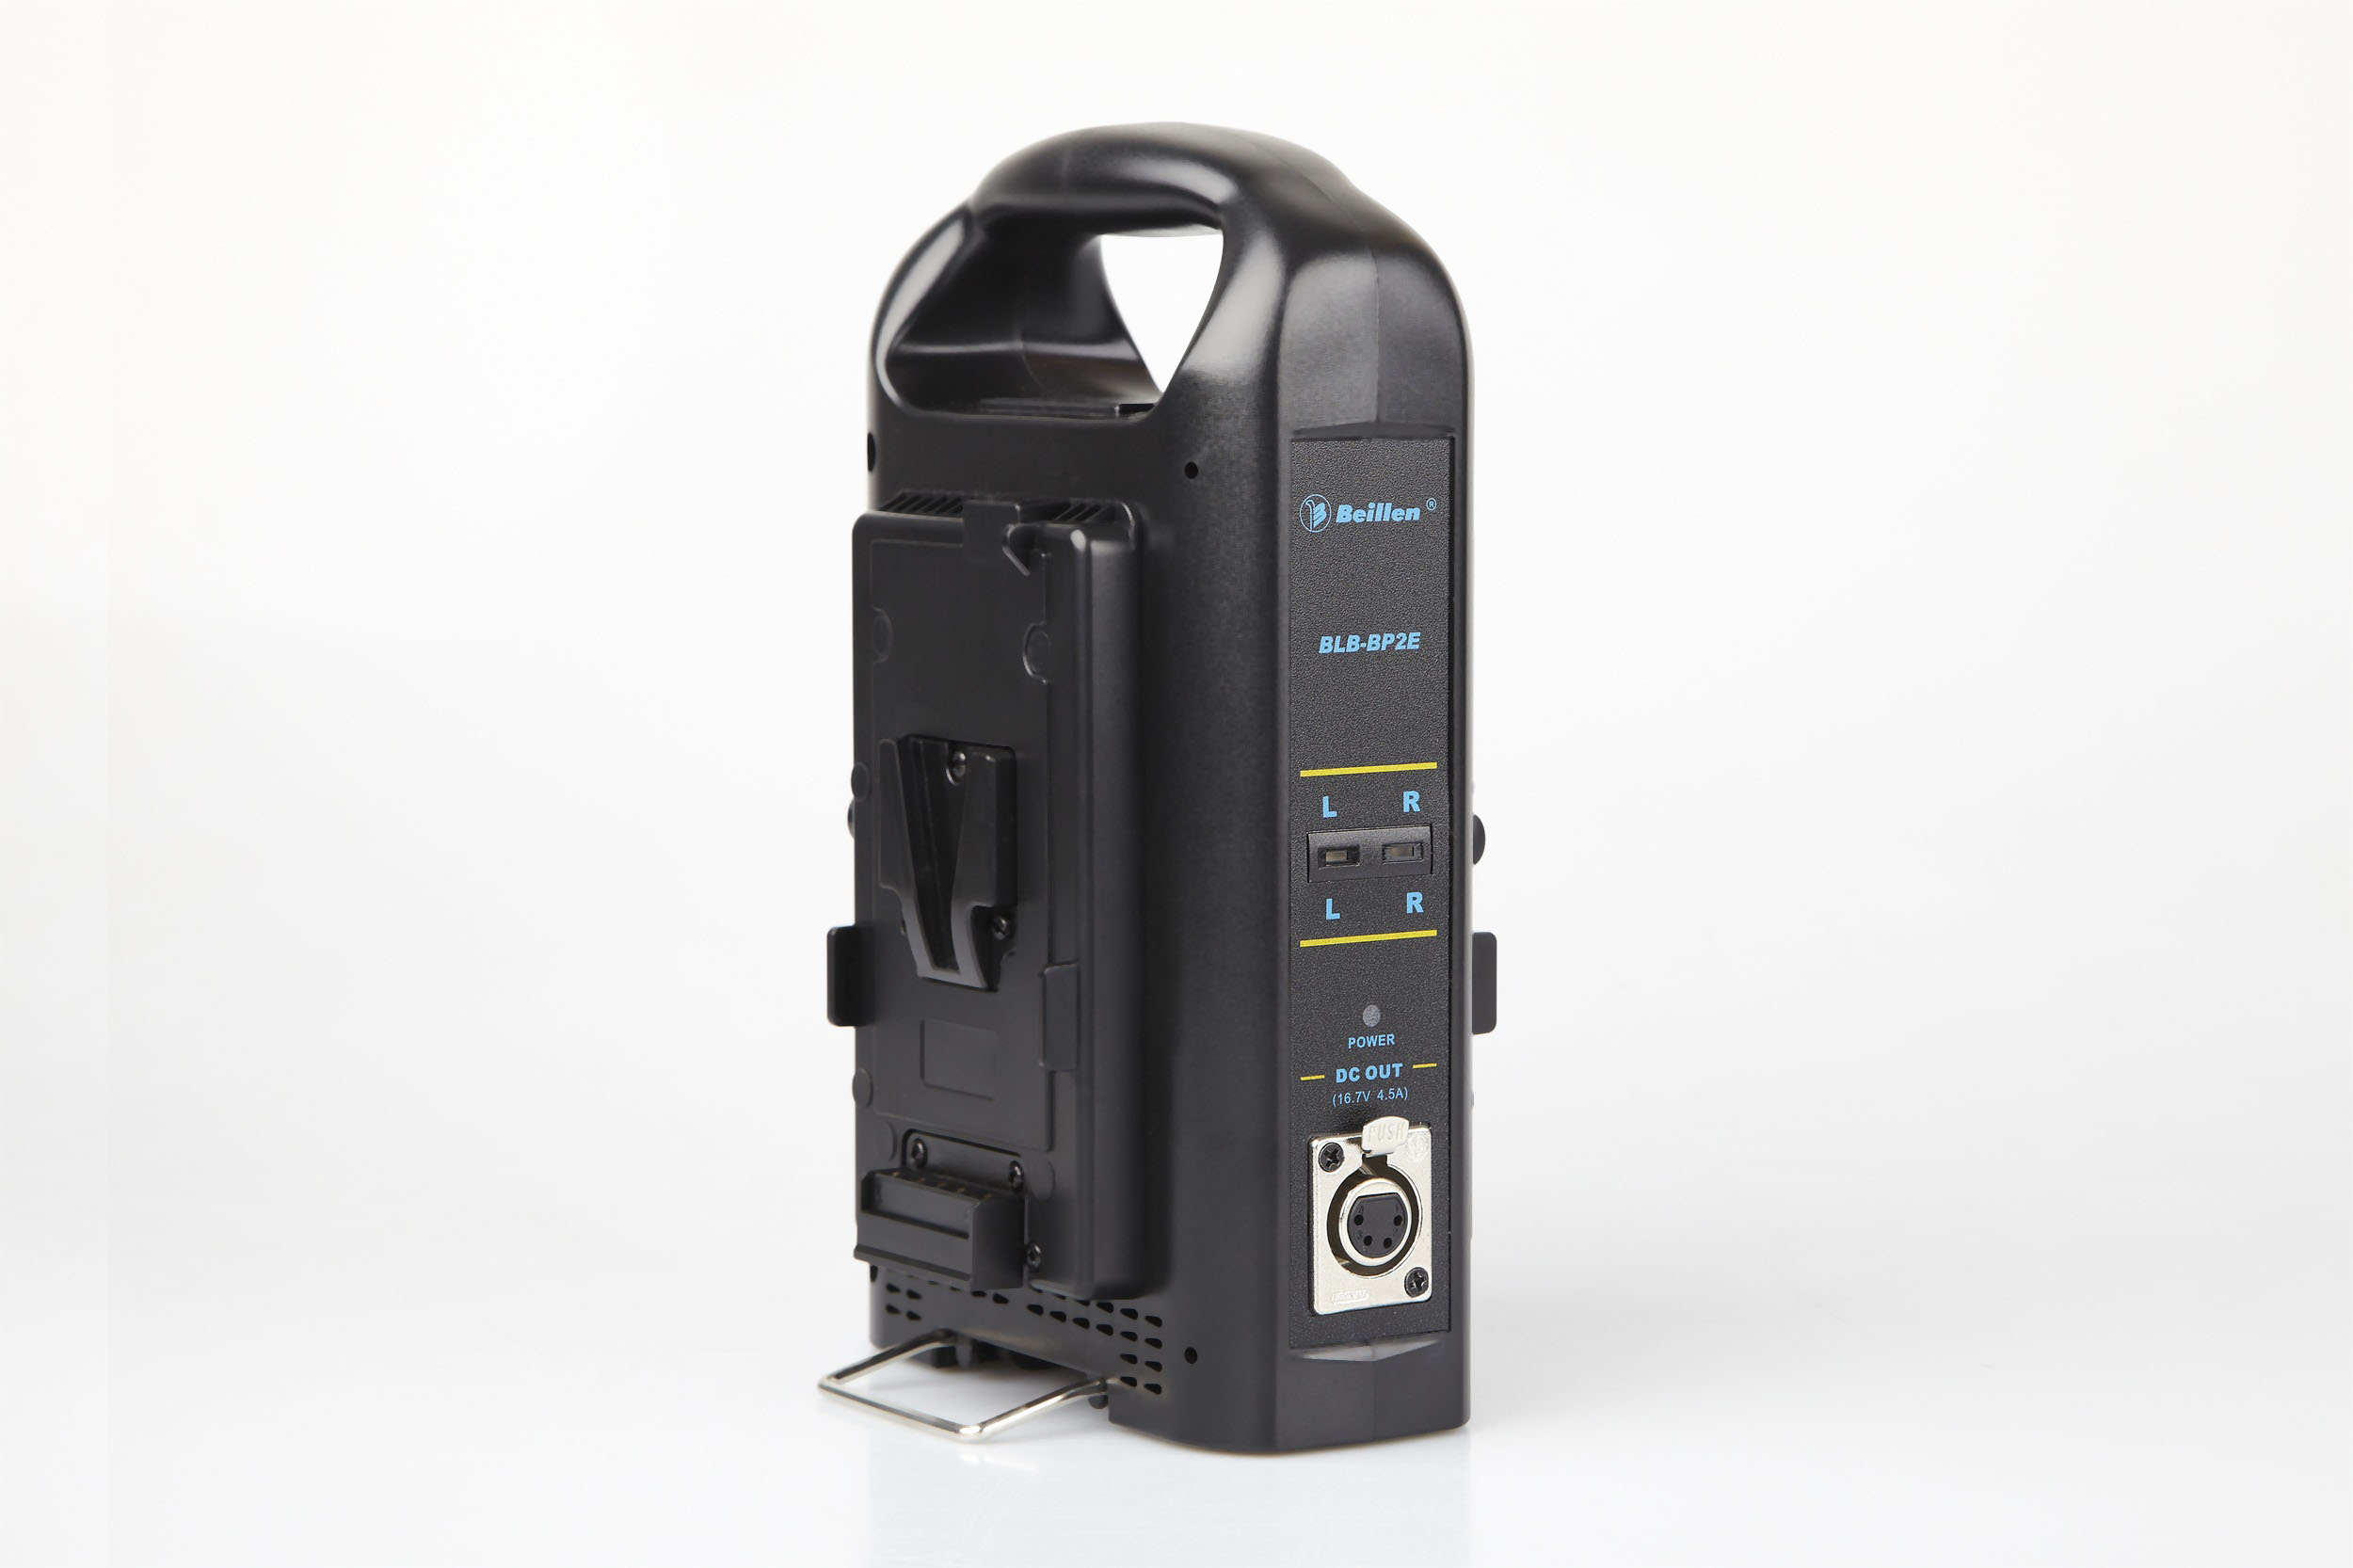 BLB1703-BP2E Li-ion charger